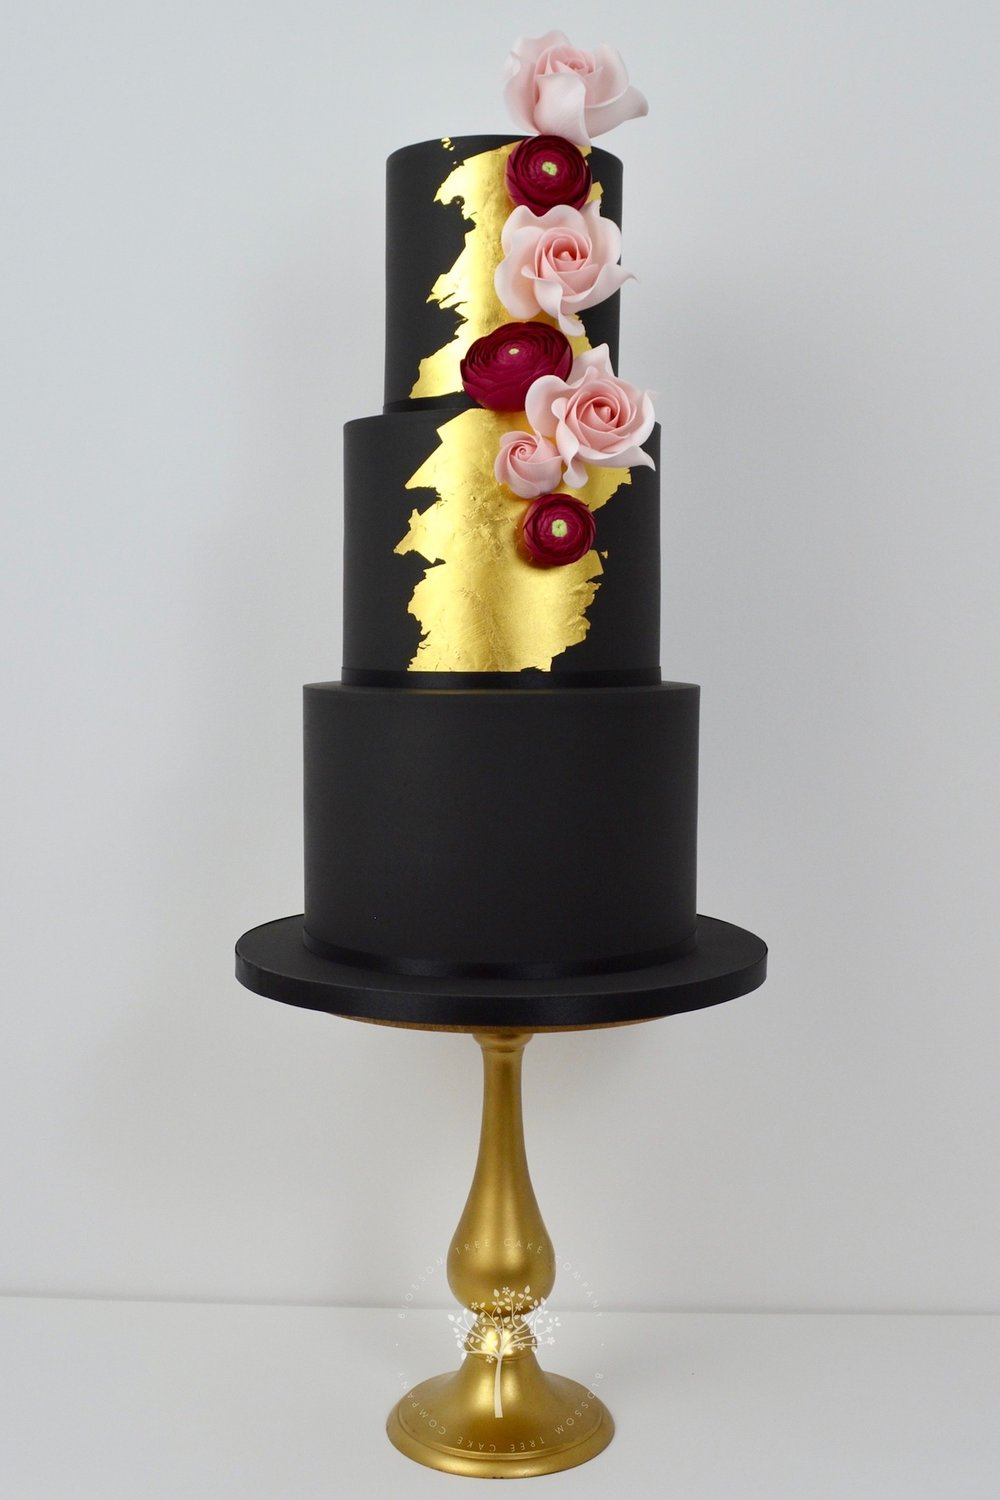 Black and Gold wedding cake by Blossom Tree Cake Company Harrogate North Yorkshire.jpg